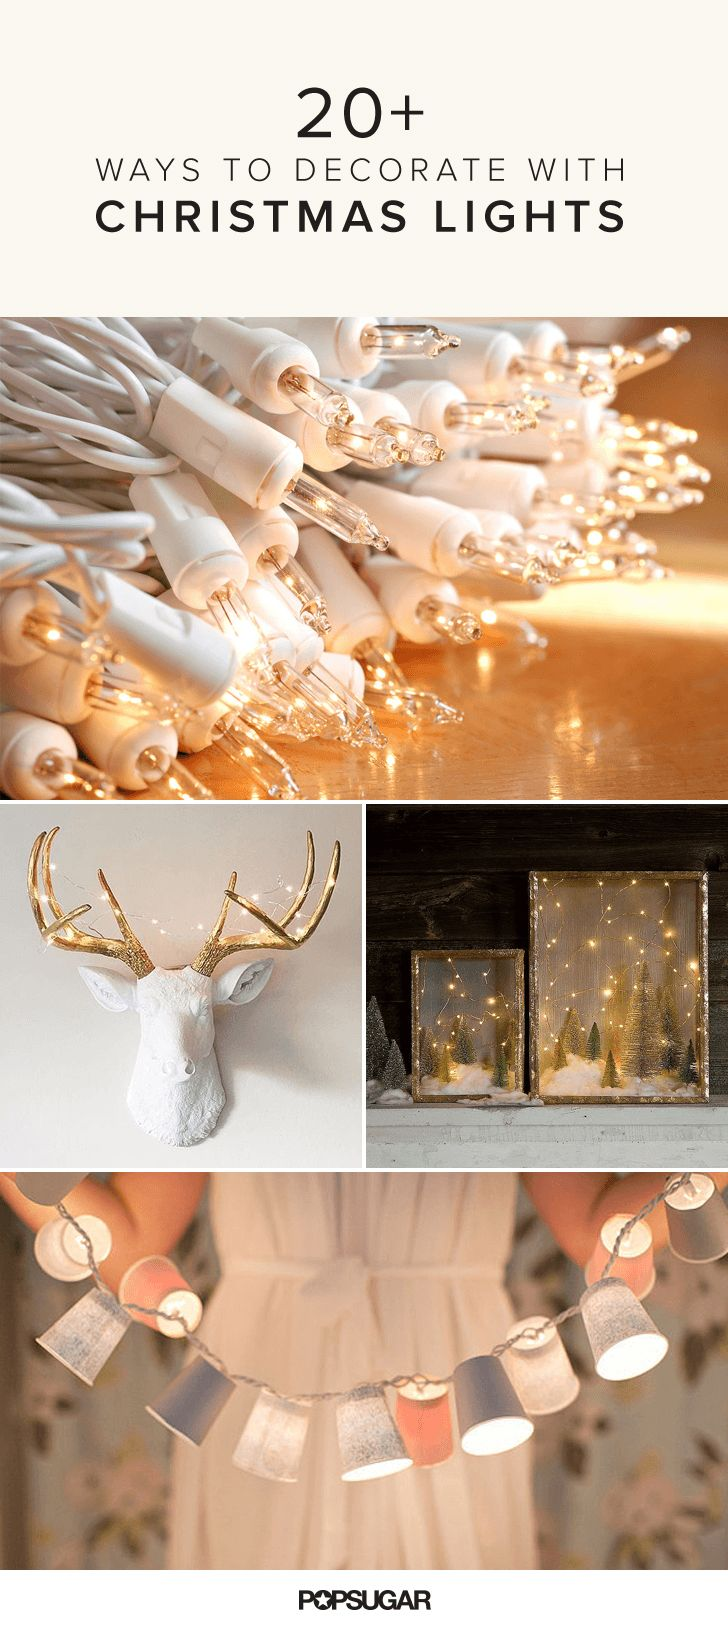 Bedroom christmas lights quotes - 23 Unique Ways To Decorate With Christmas Lights